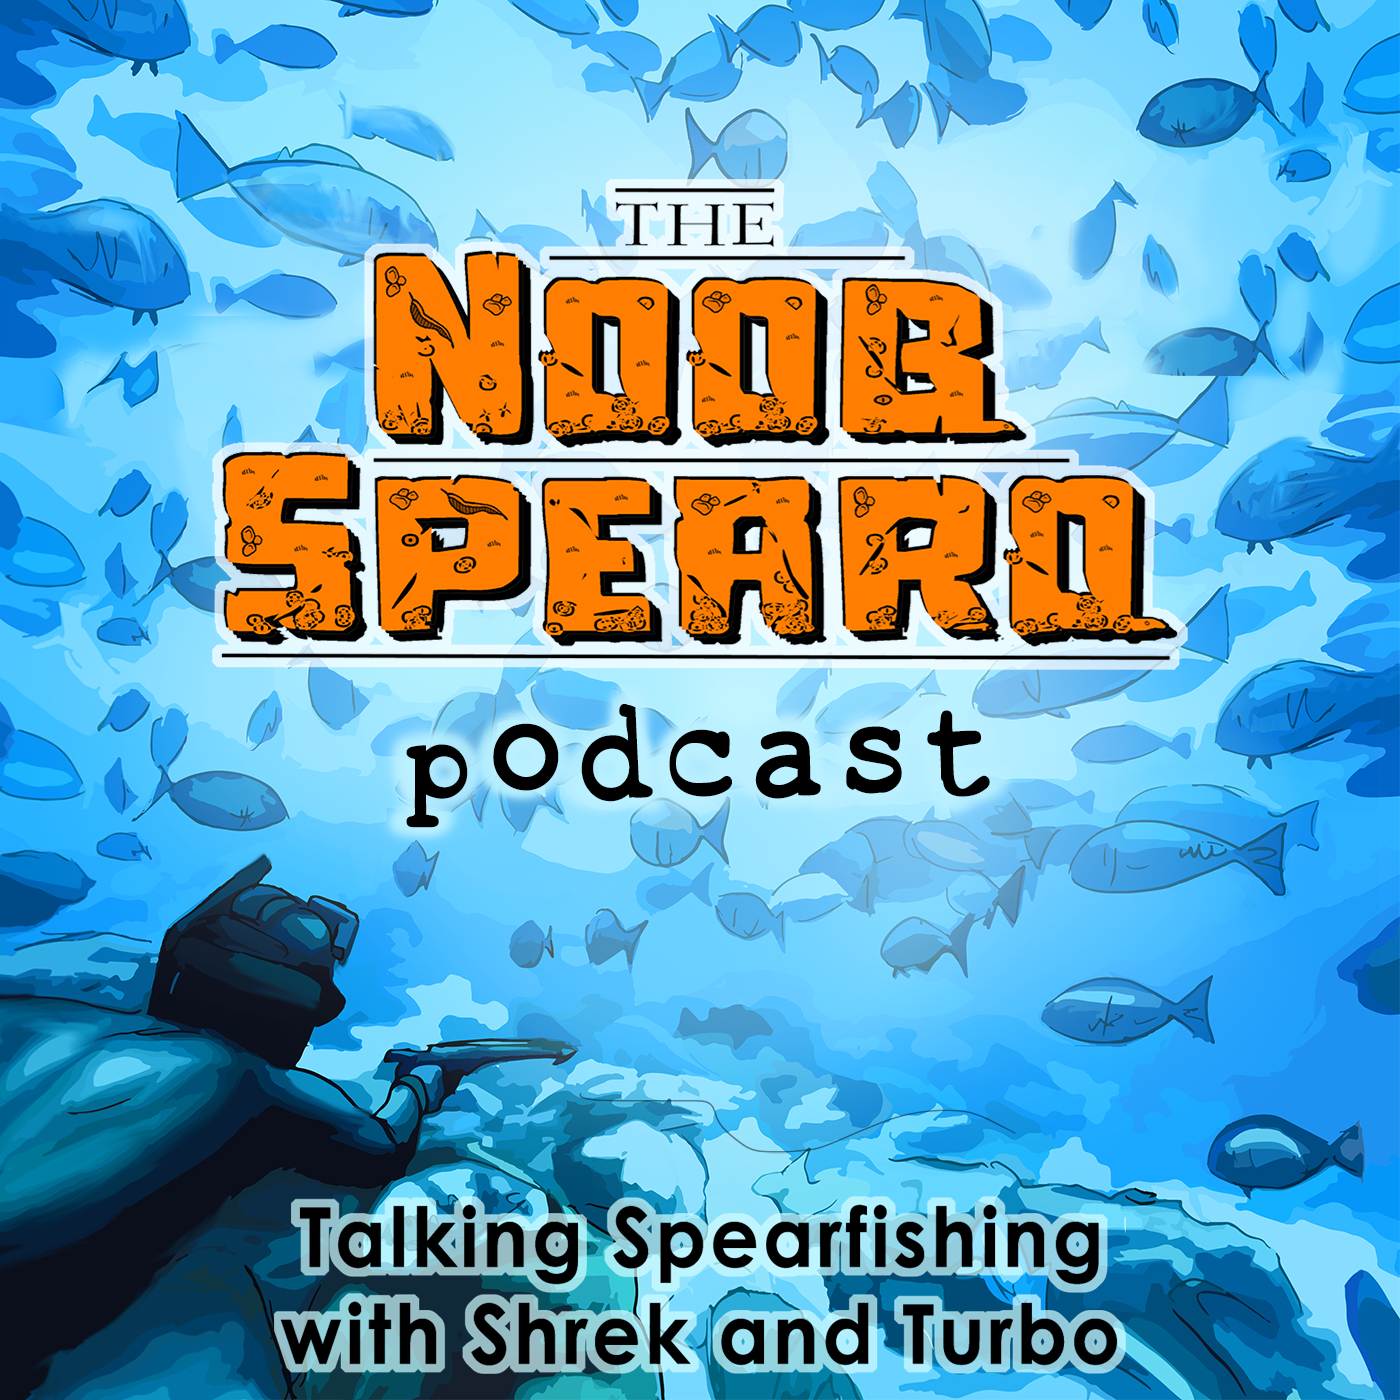 Noob Spearo Podcast | Spearfishing Talk with Shrek and Turbo